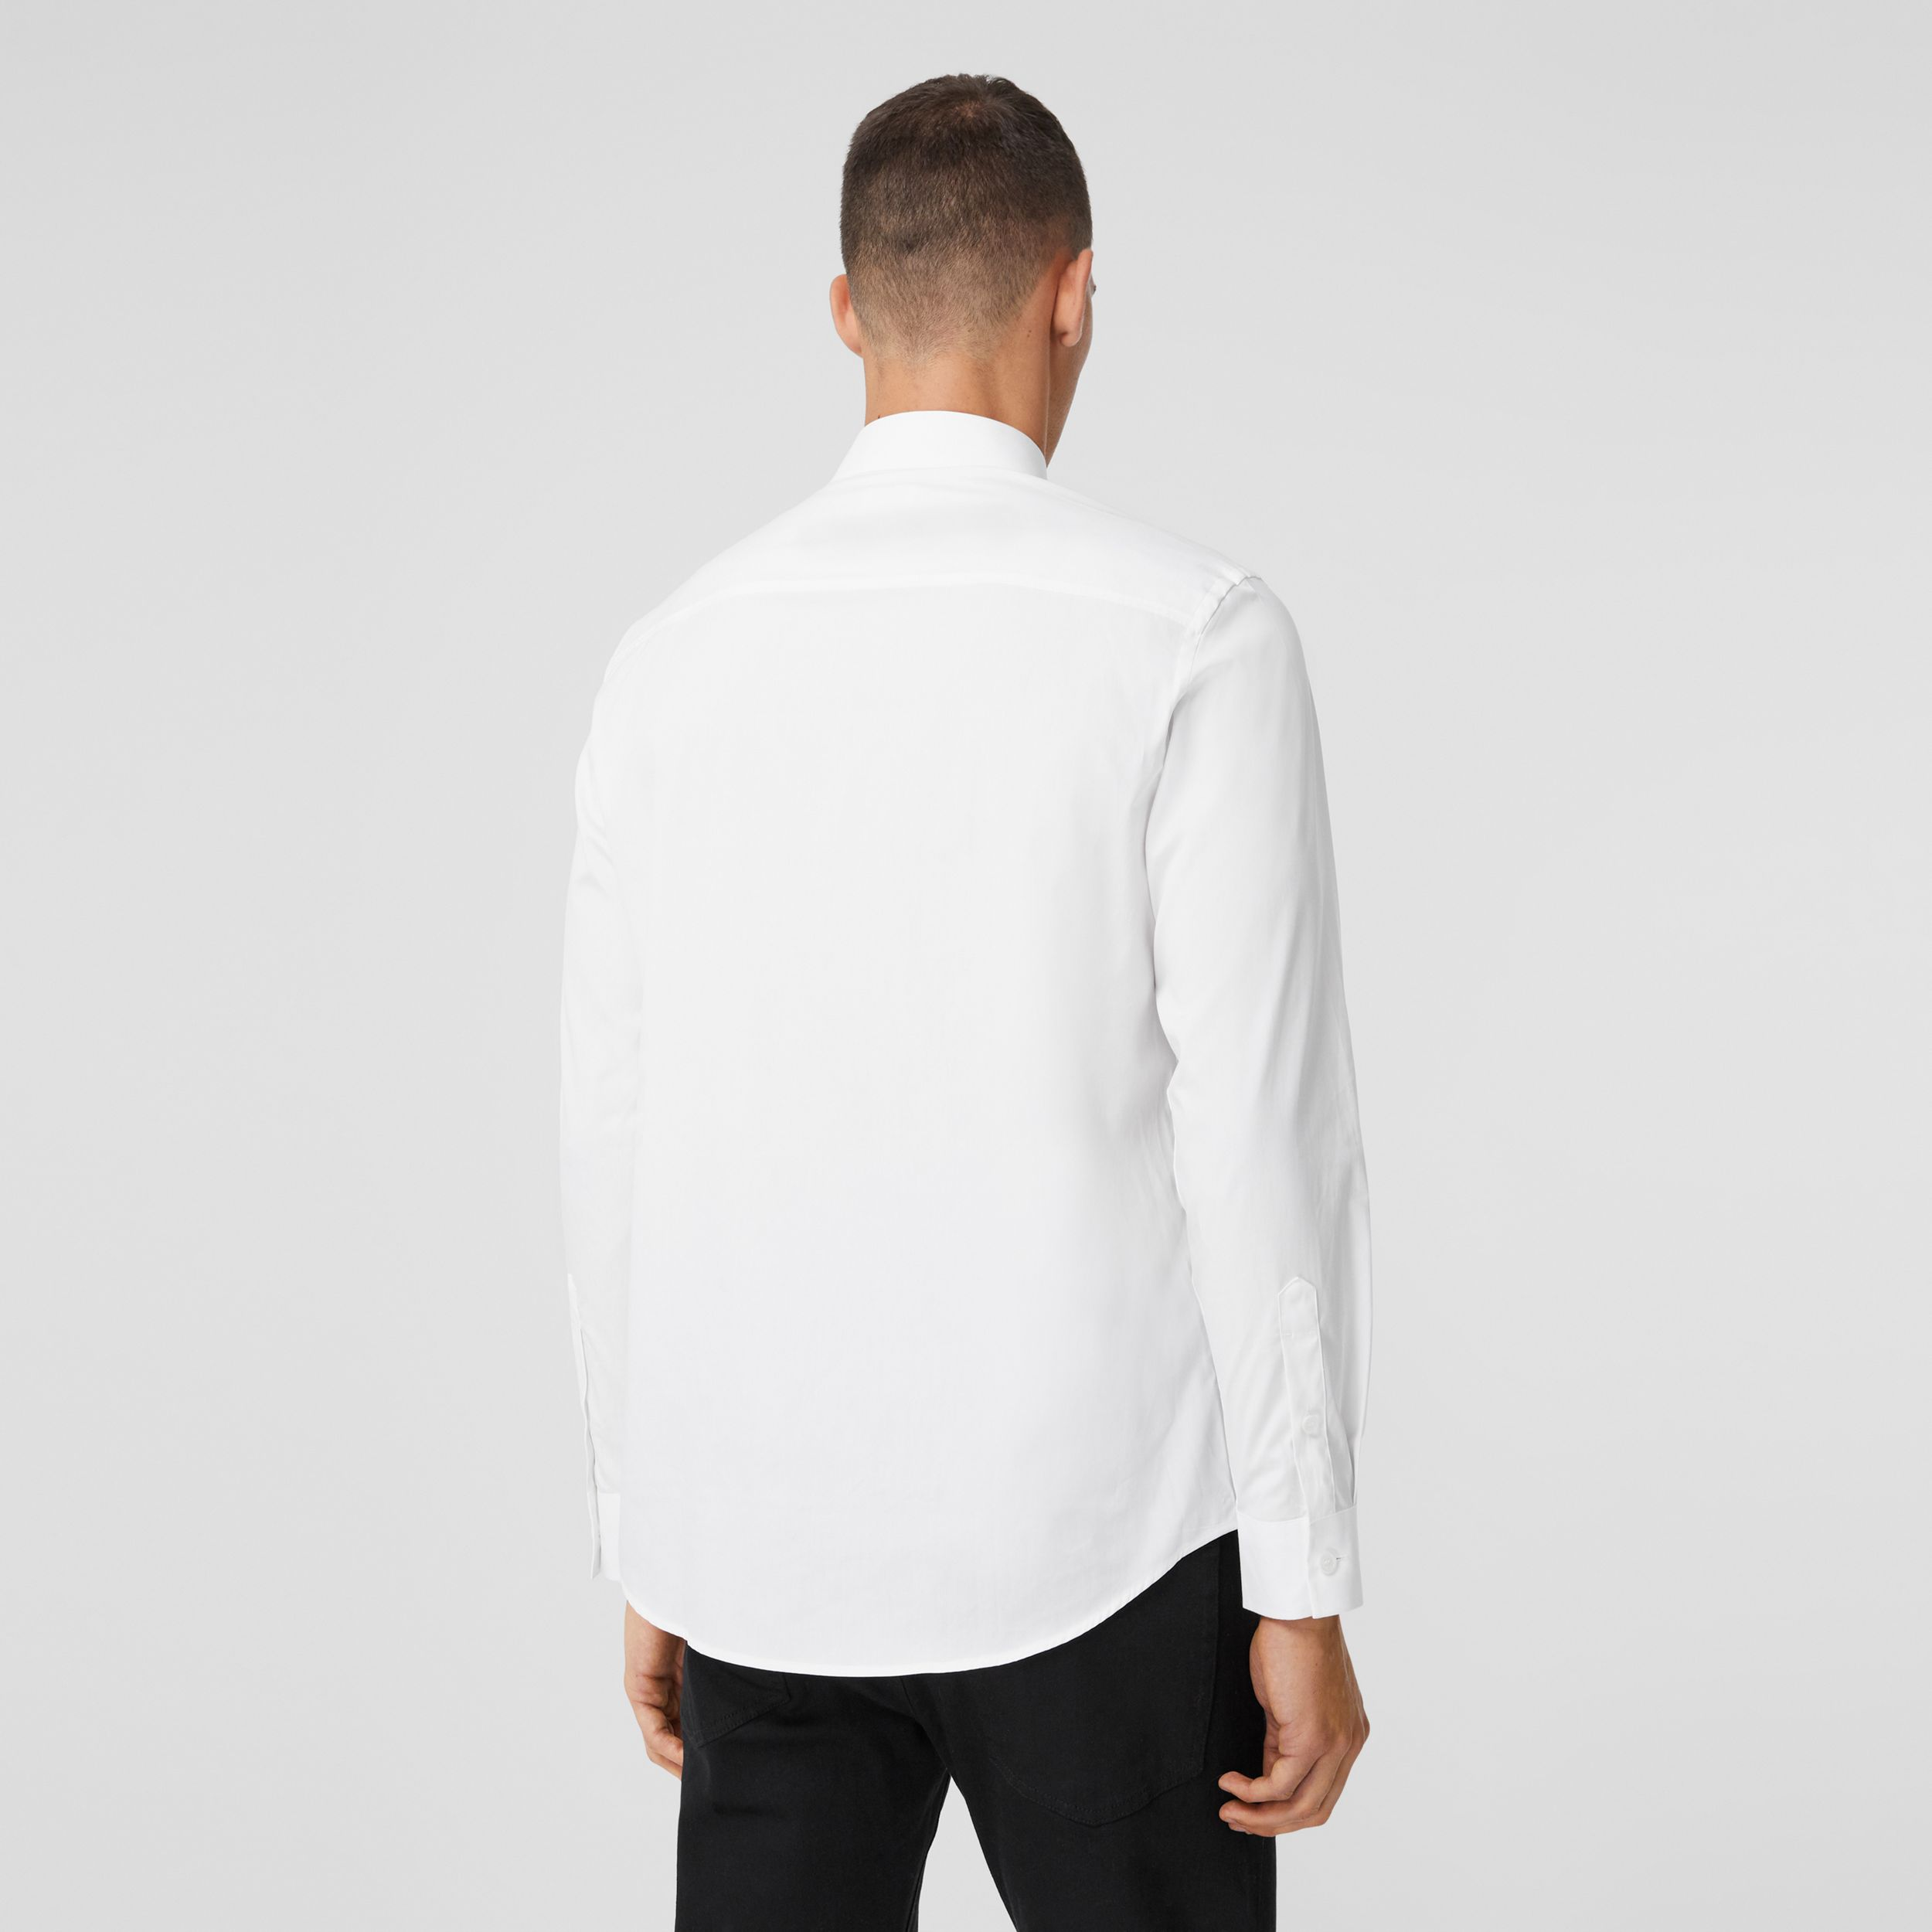 Monogram Motif Stretch Cotton Poplin Shirt in White - Men | Burberry - 3